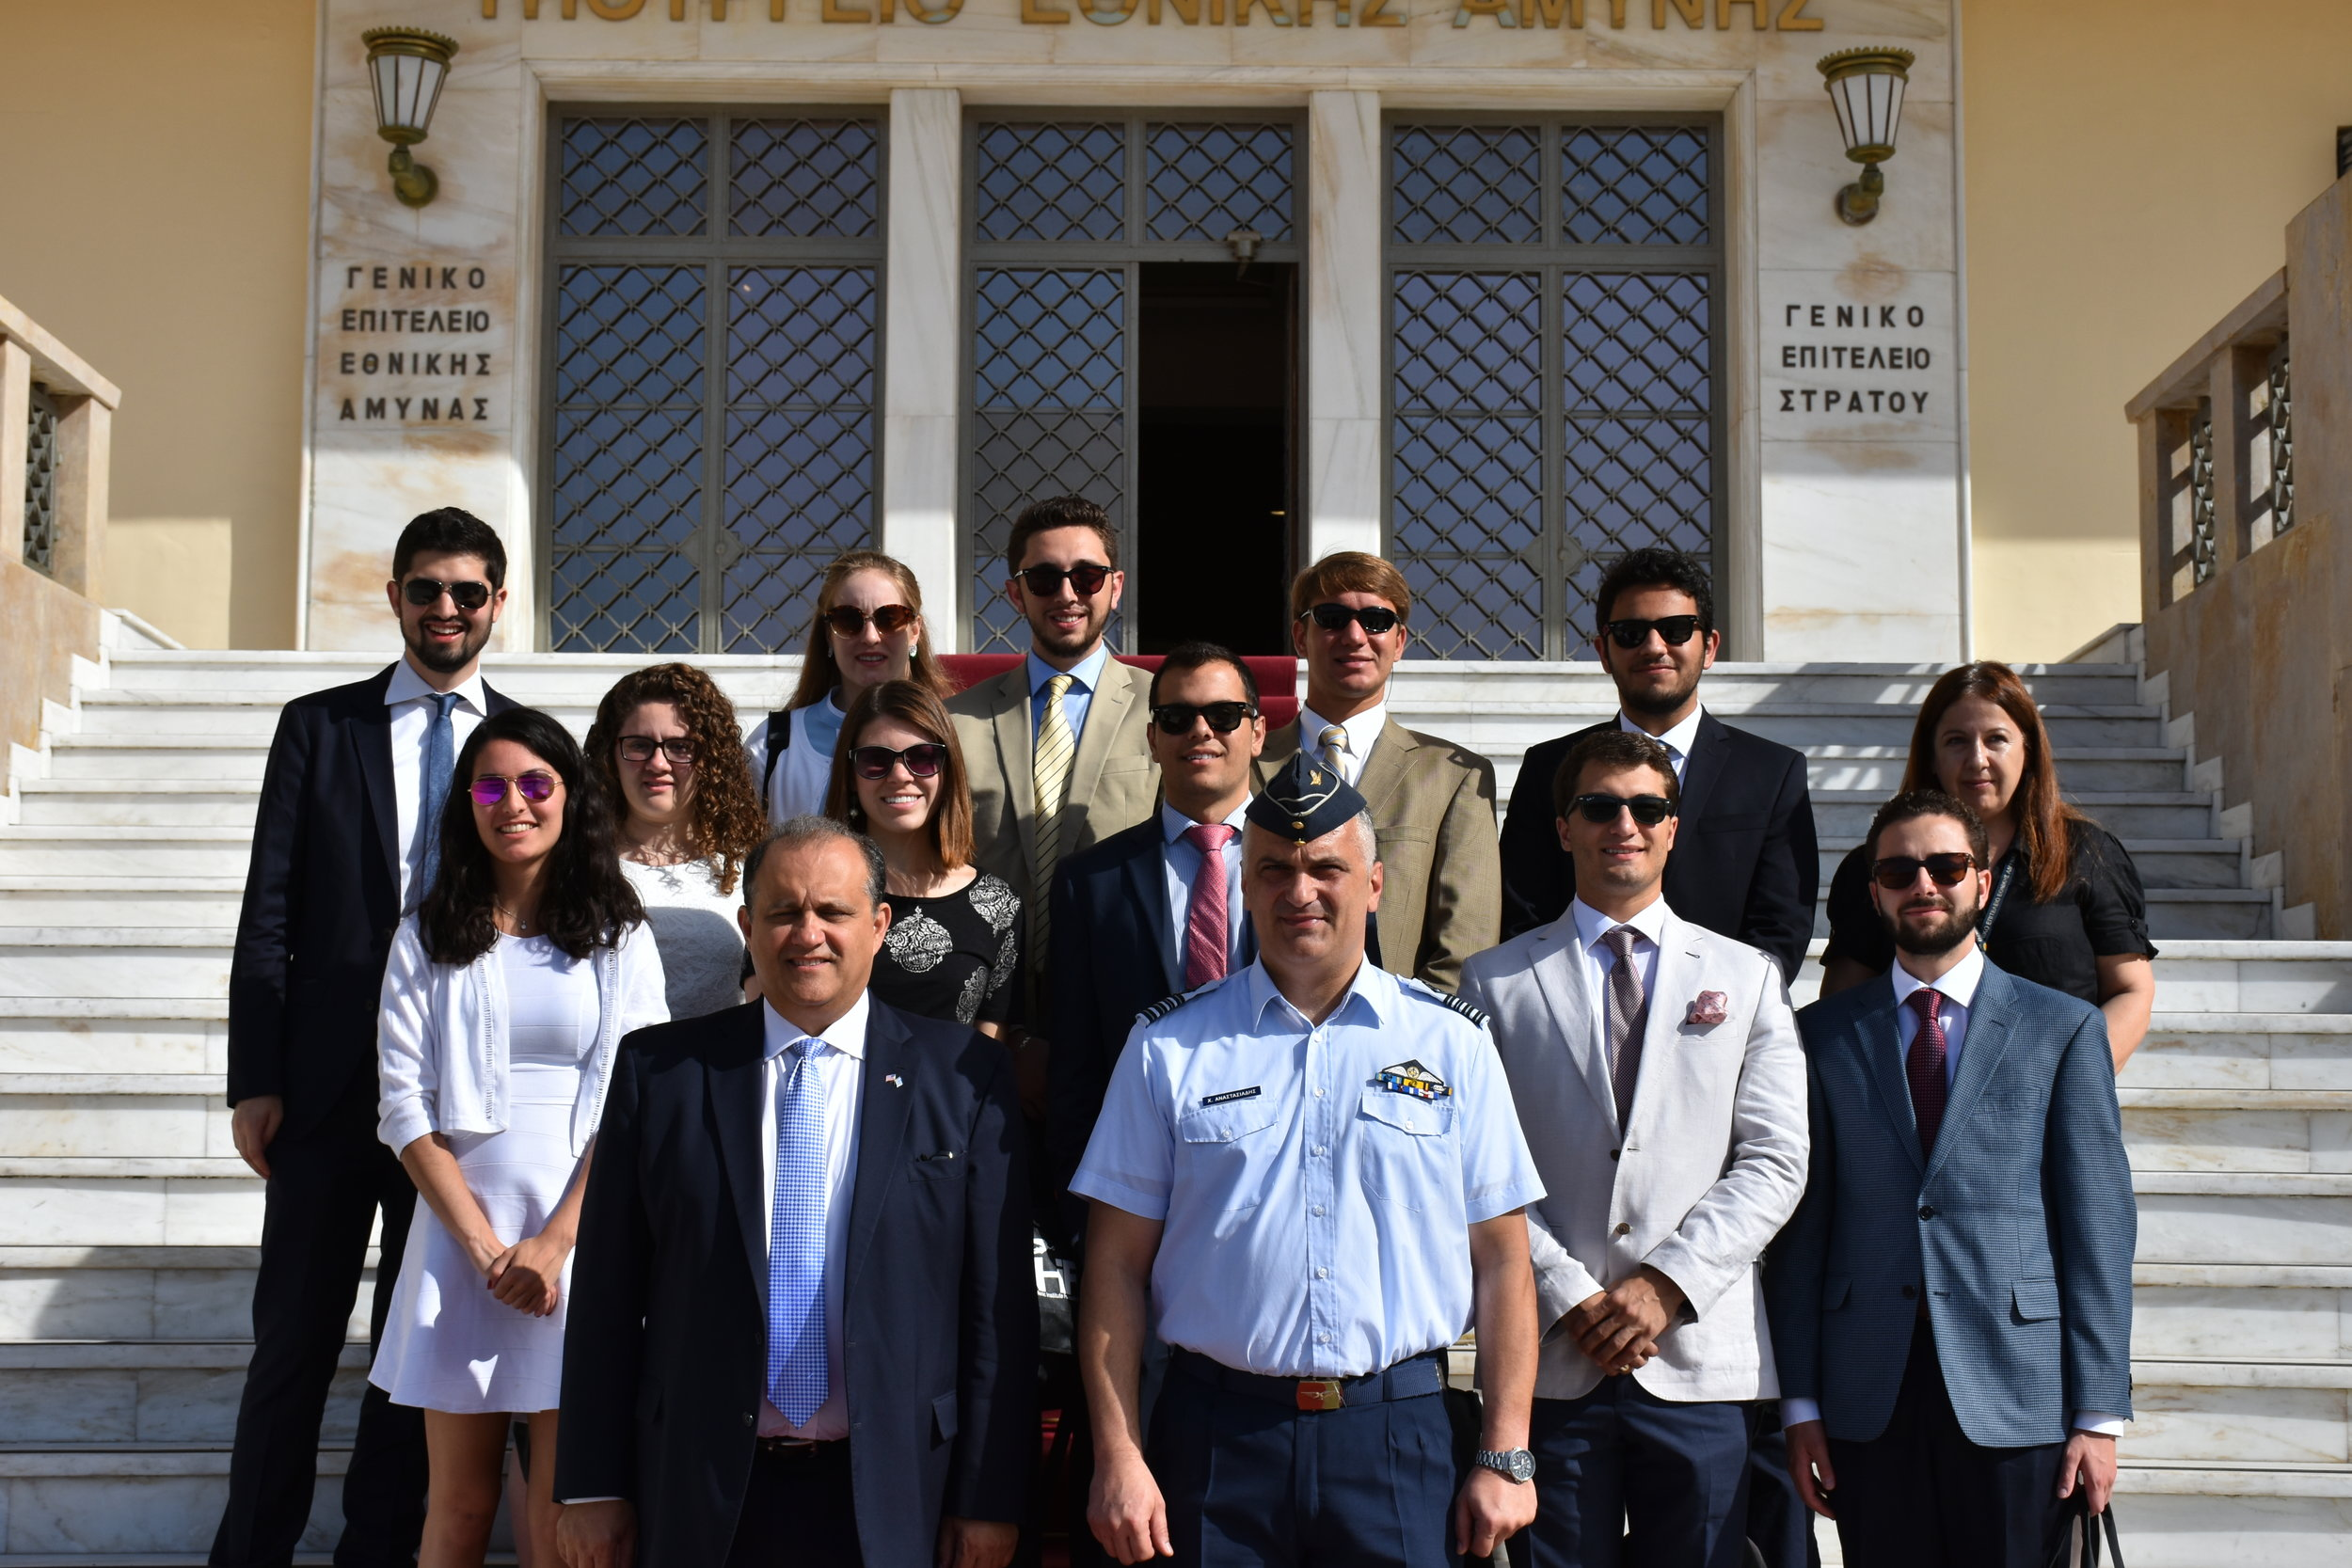 Lt. Col. Christos Anastasiadis, Deputy Director, Public Relations Directorate welcoming students to the Ministry of Defense.